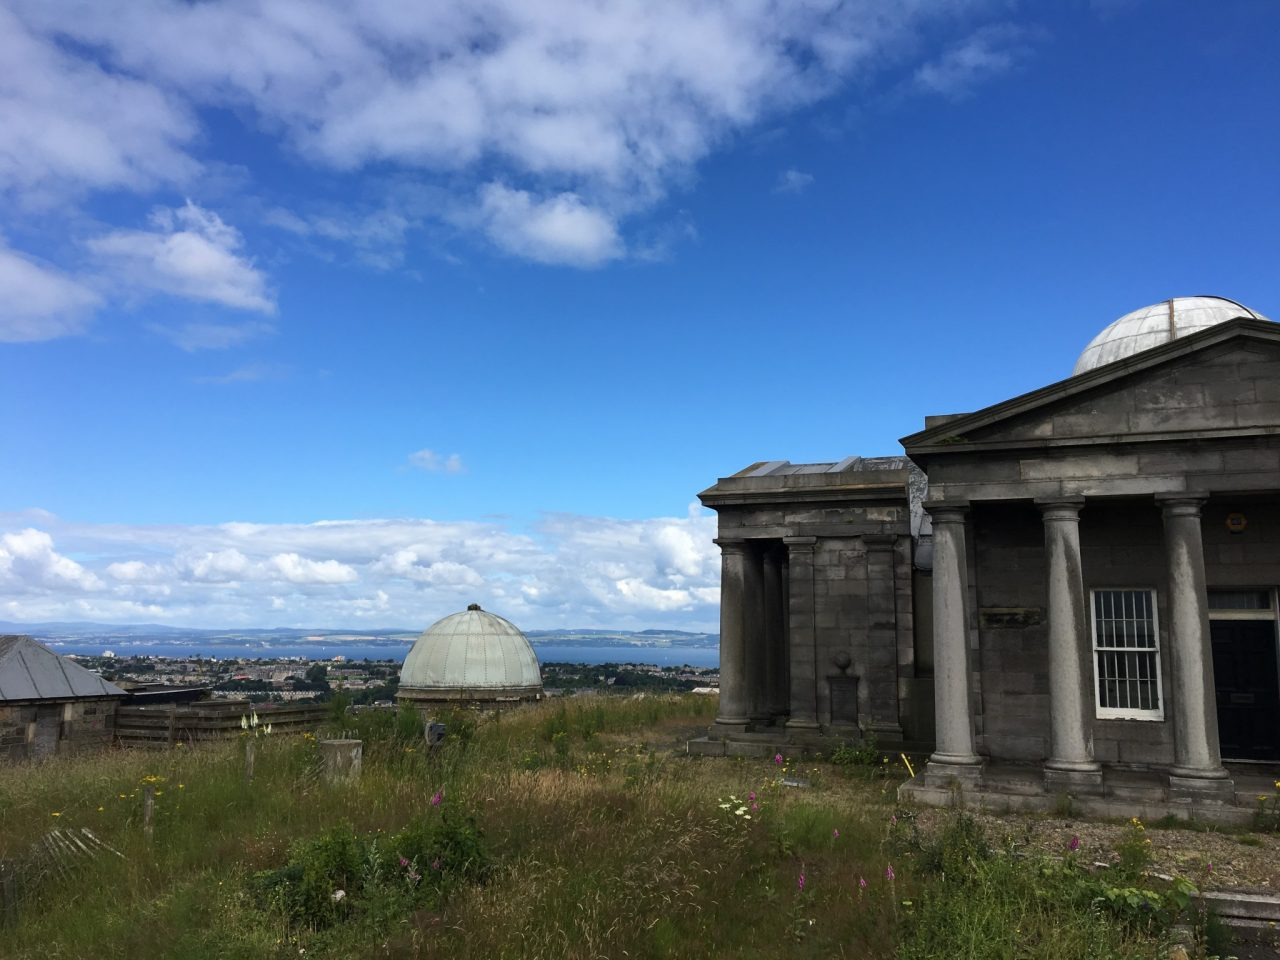 Old observatory on a hill